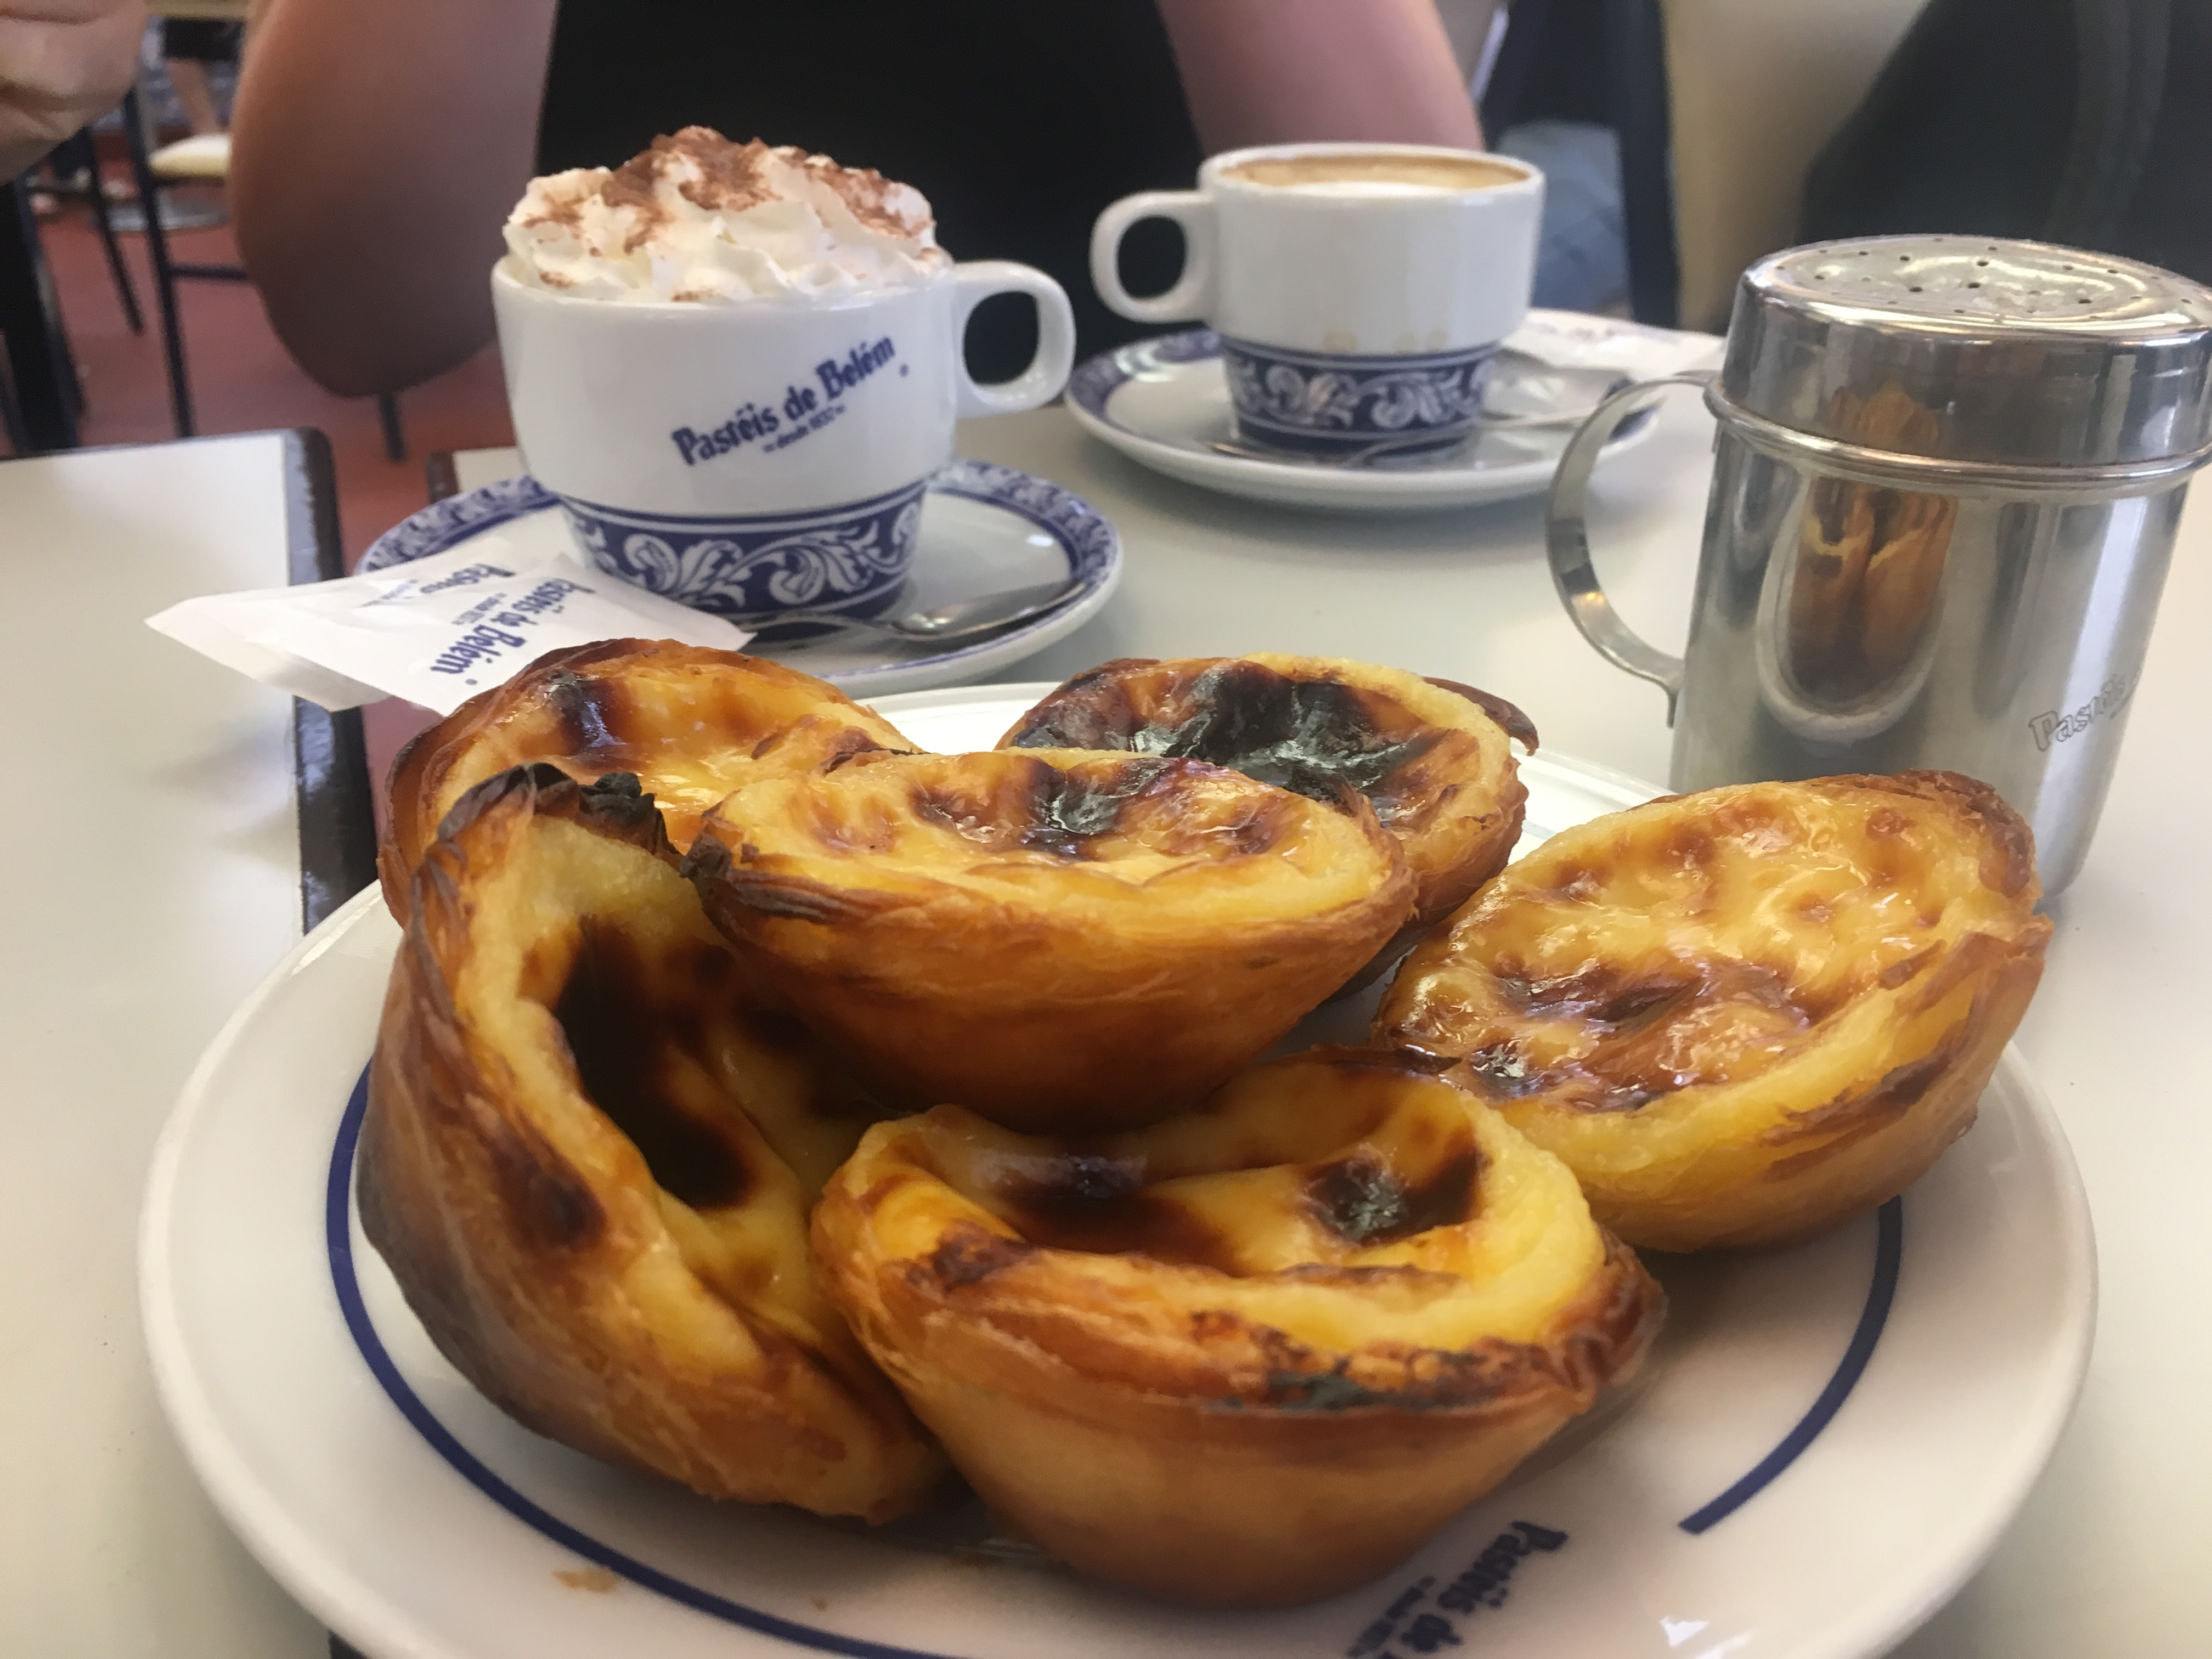 A traditional Belem pastry